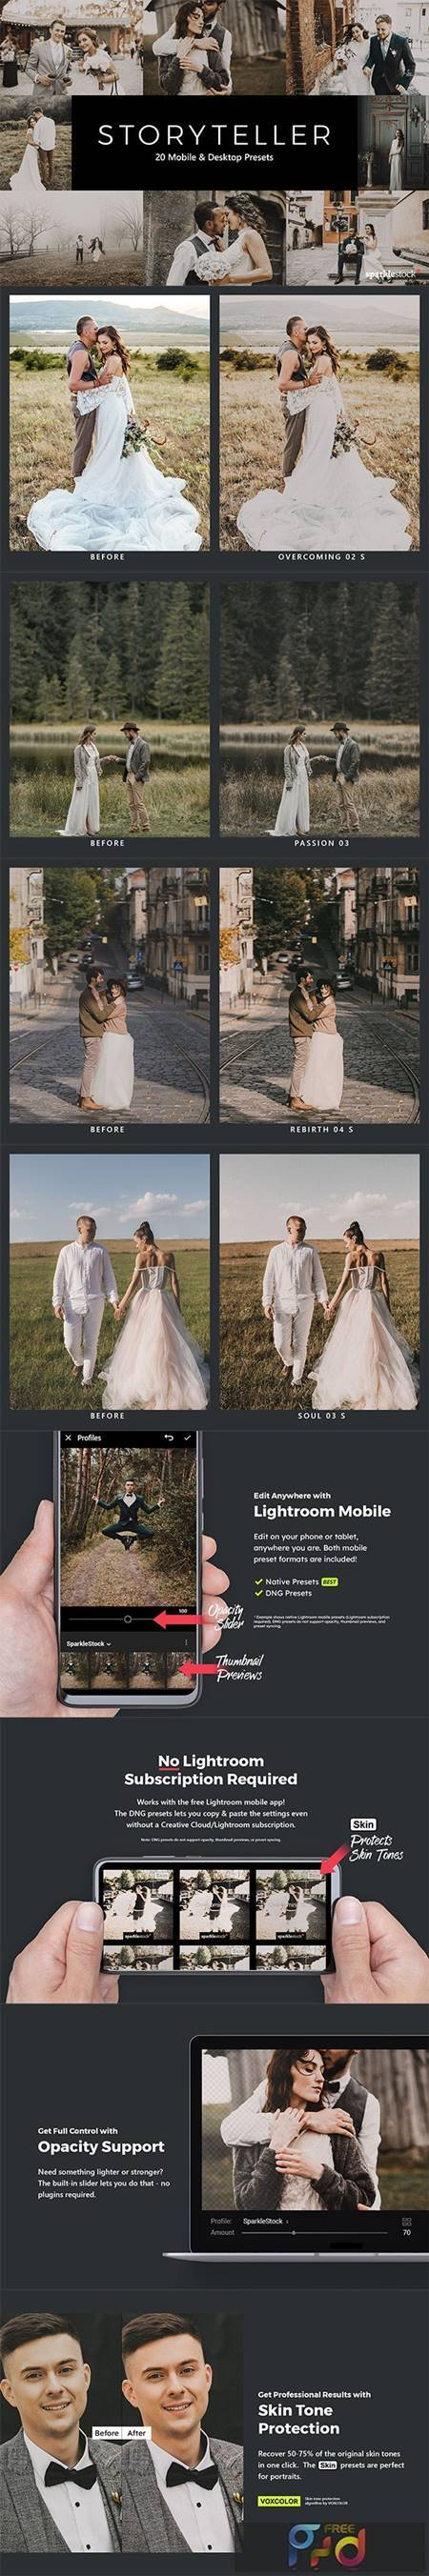 20 Storyteller Lightroom Presets & LUTs 28789180 1